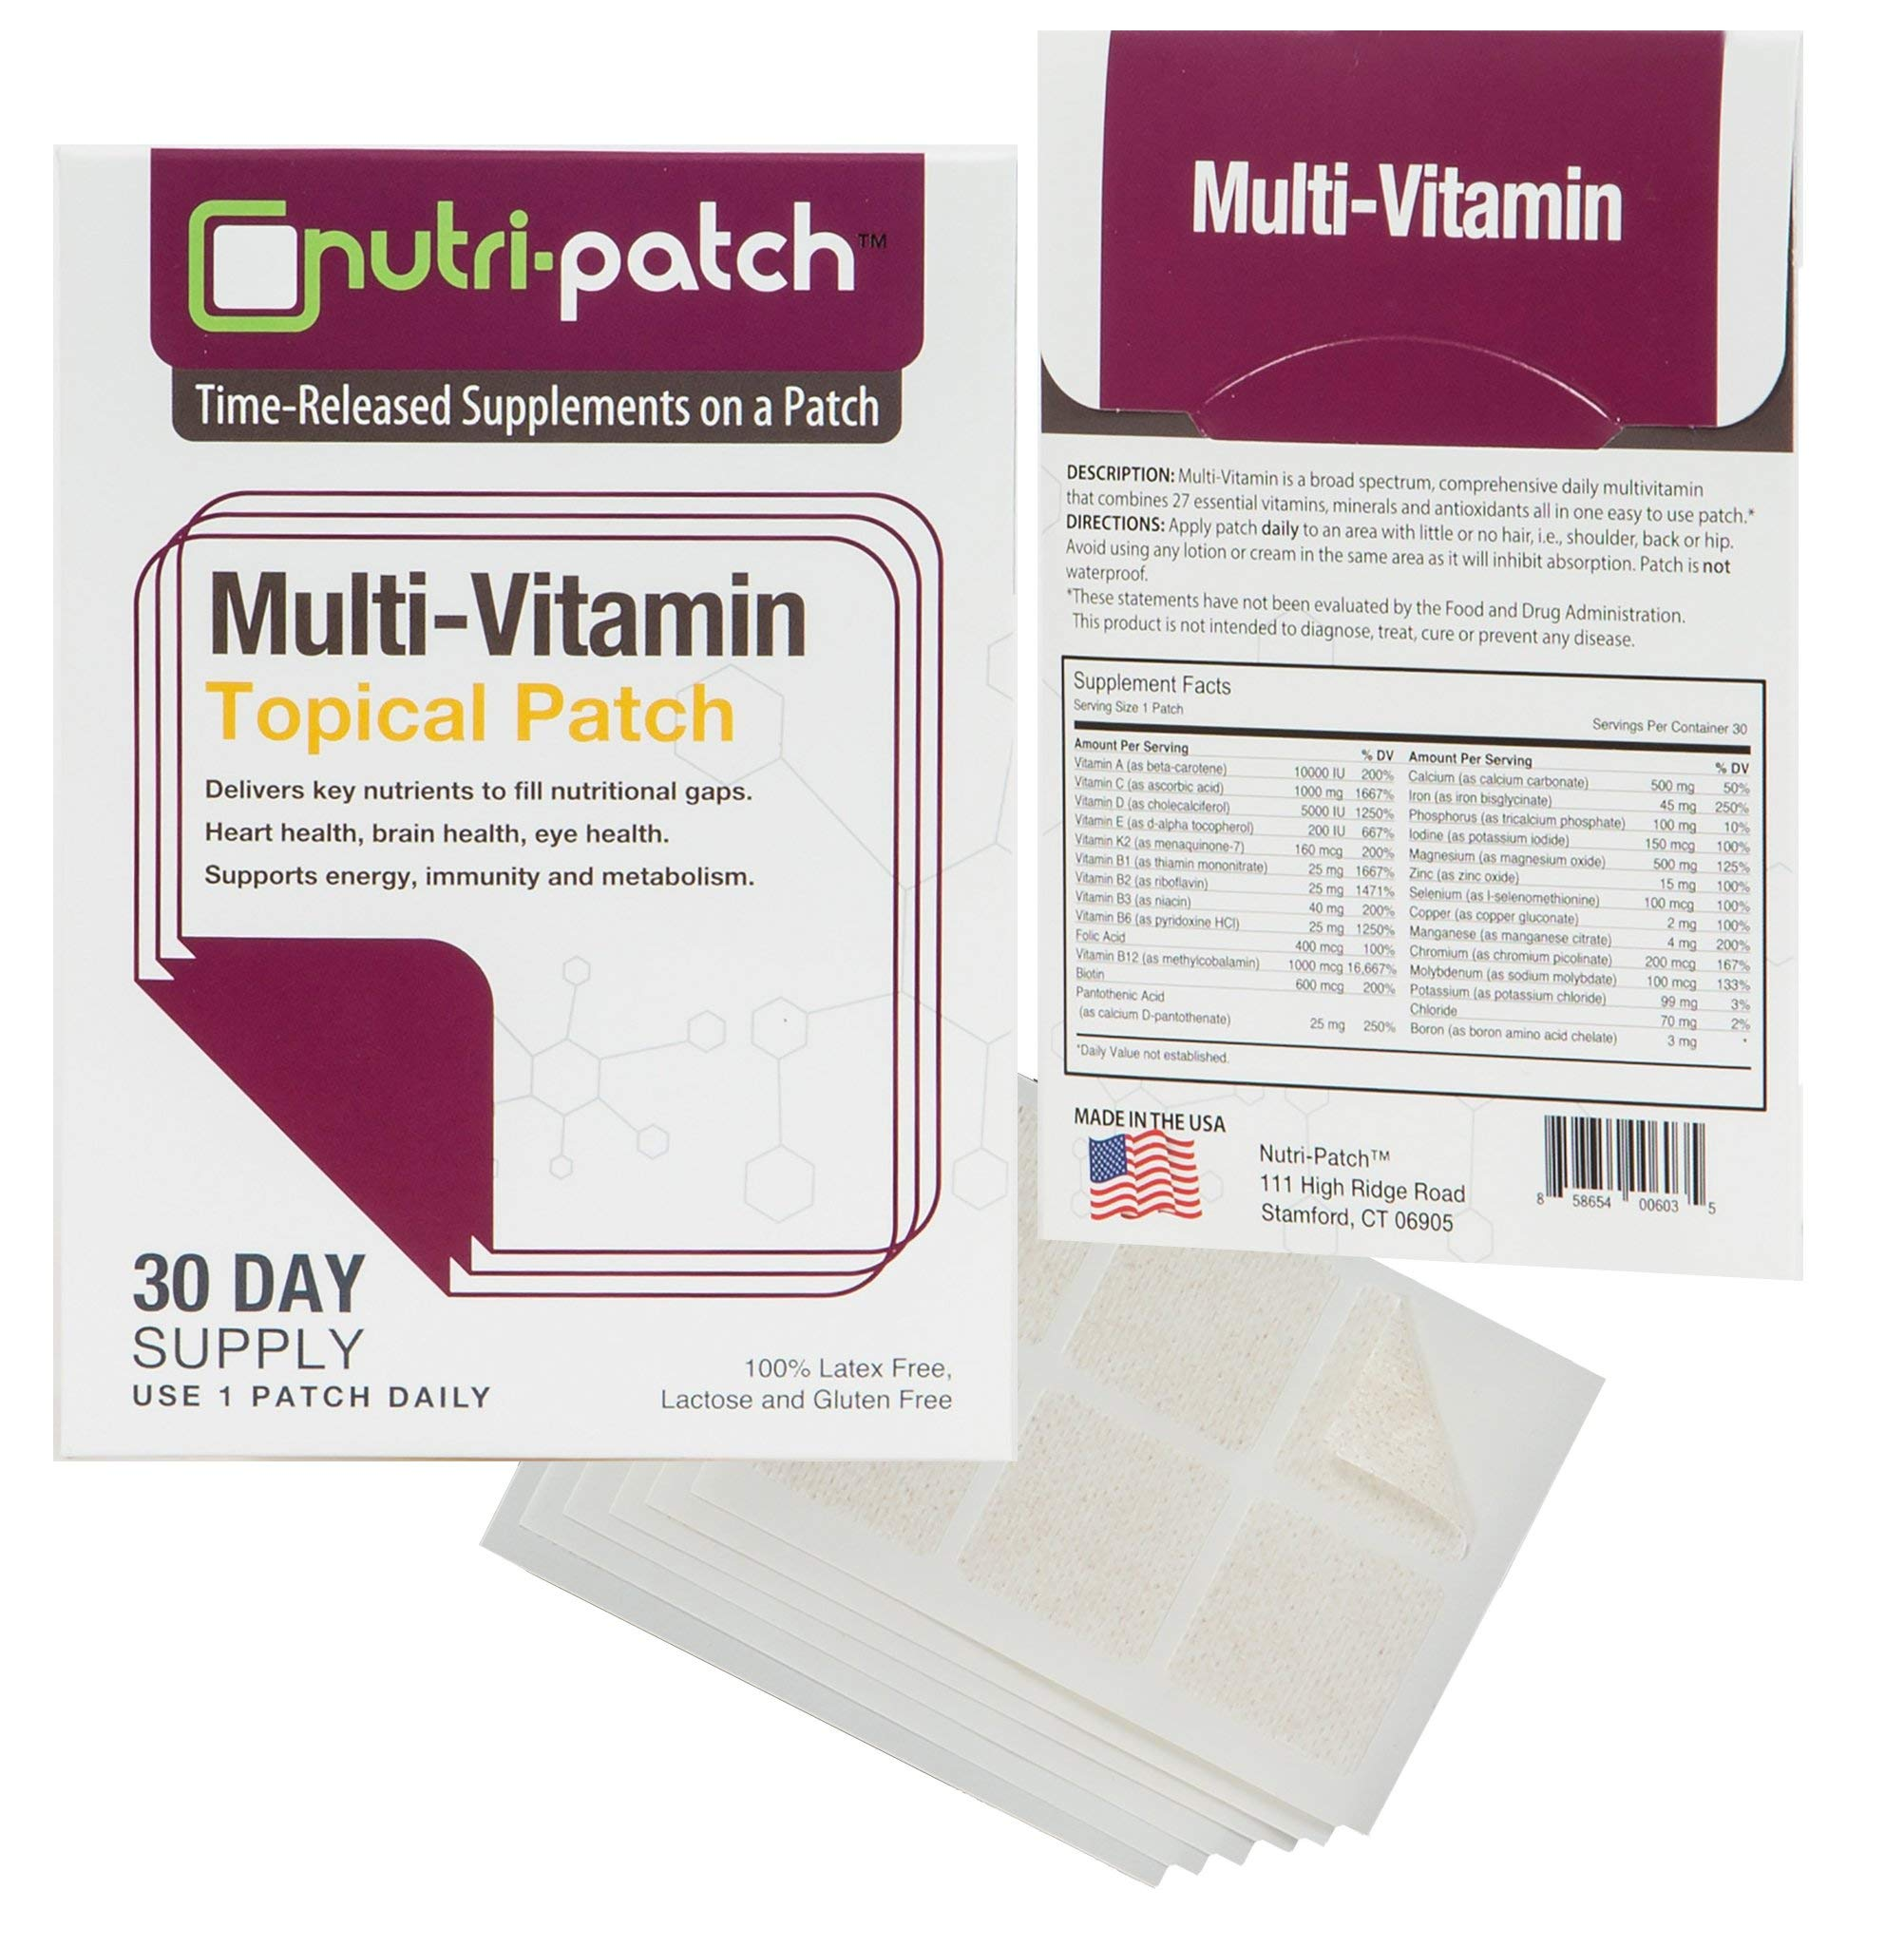 Multi-Nutrients Topical Patch from Nutri-Patch® by NUTRI-PATCH